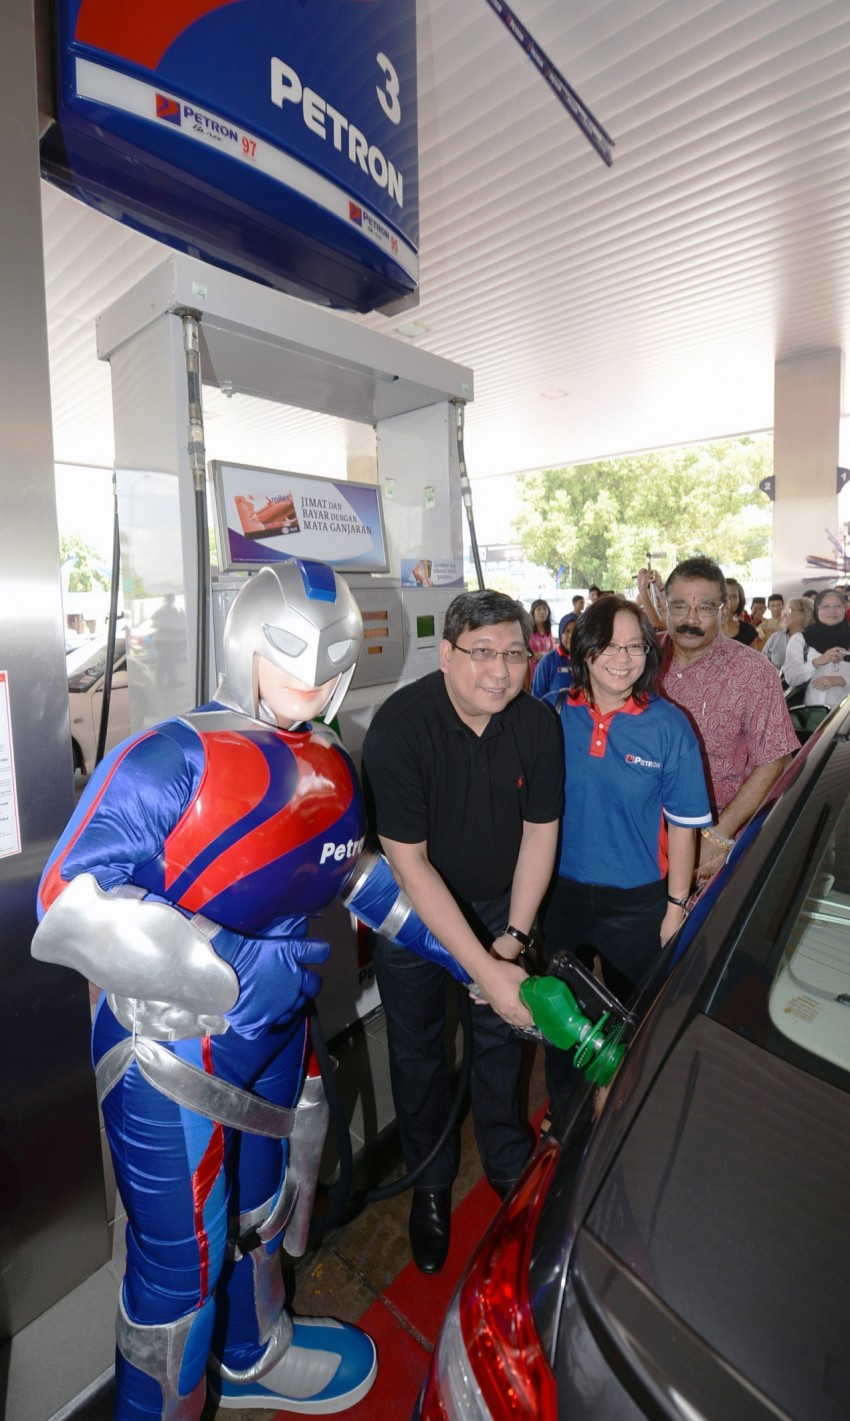 Petron celebrates first anniversary in Malaysia Image #174583